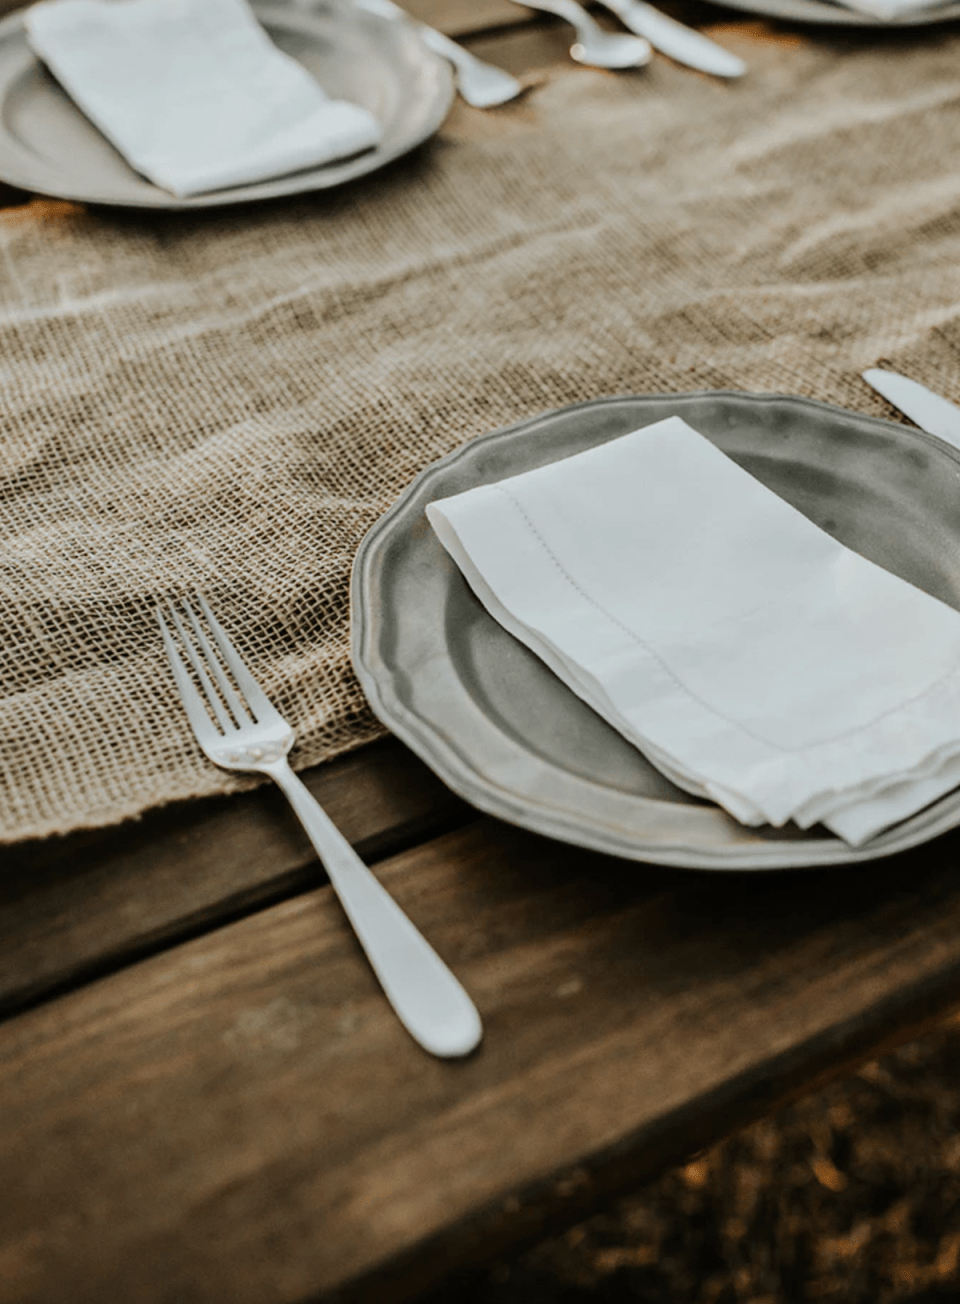 a rustic wooden table set with a burlap runner, pewter flatware, a grey scalloped edge plate and a white linen hemstitched napkin